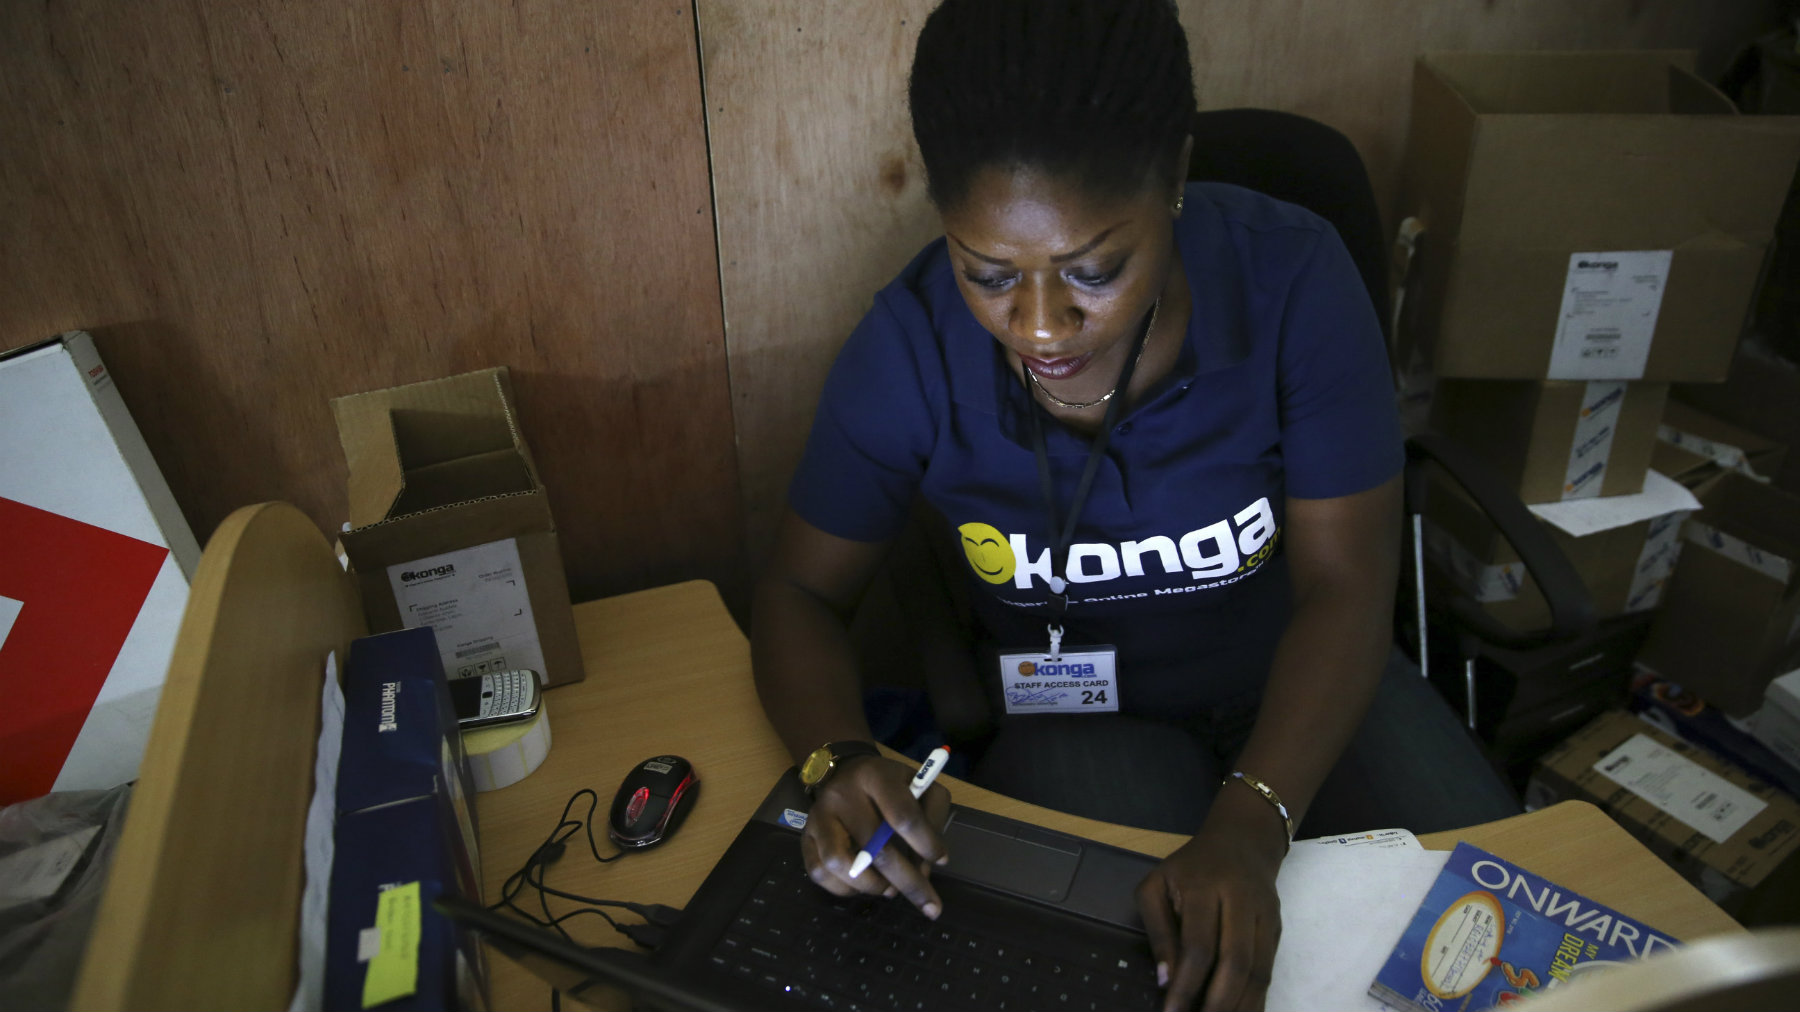 A staff inputs data into a computer at the warehouse of Konga online shopping company in Ilupeju district in Nigeria's commercial capital Lagos.